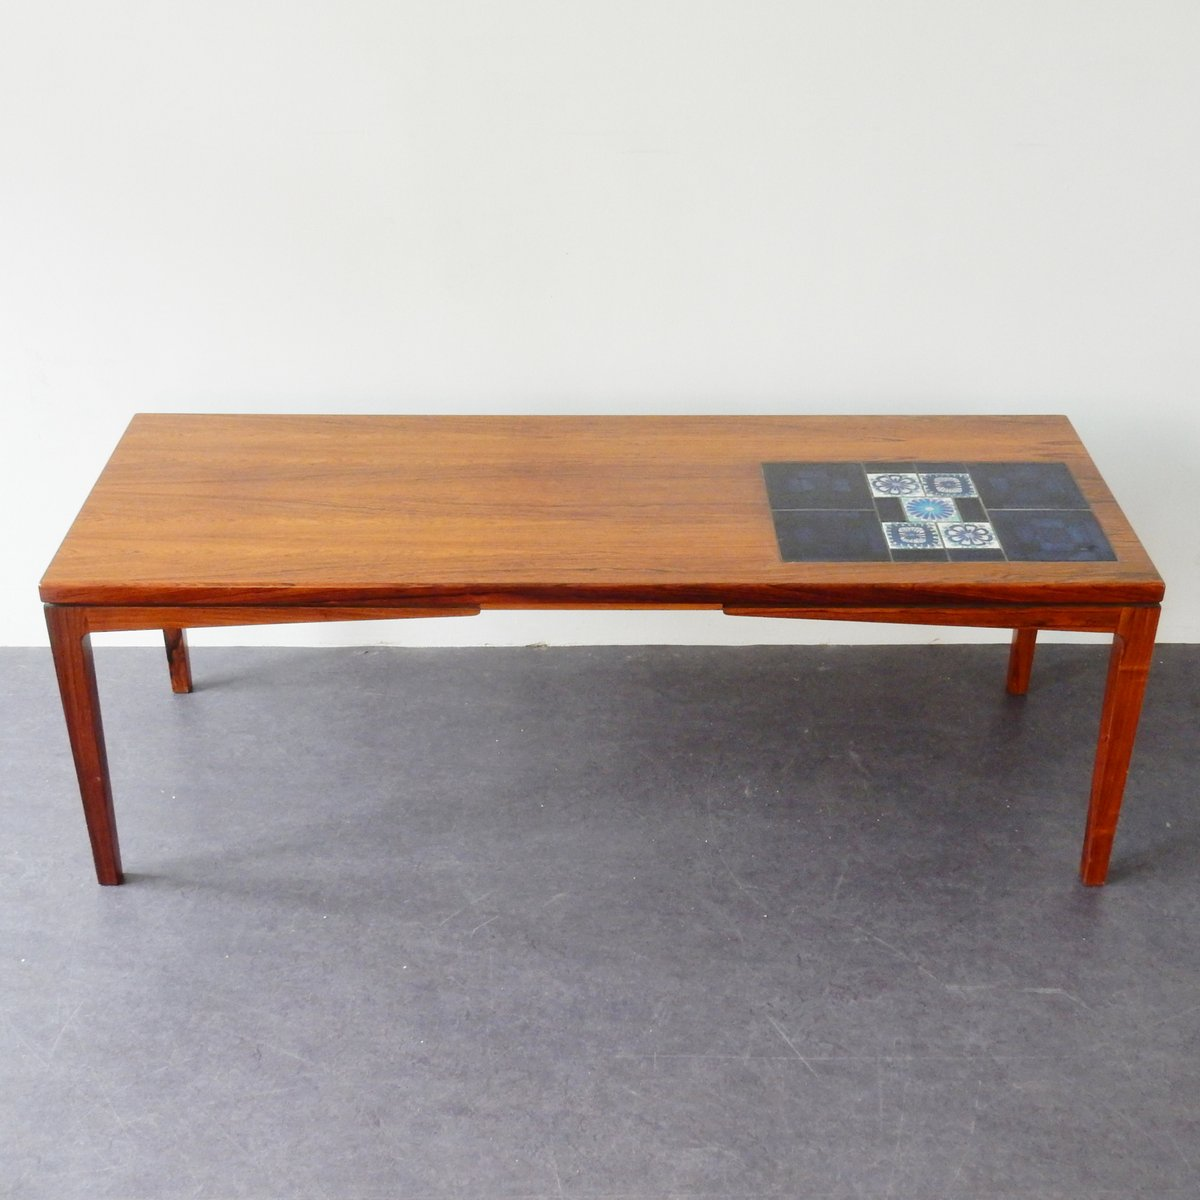 Mid Century Modern Coffee Table Australia: Mid-Century Coffee Table With Tiles For Sale At Pamono